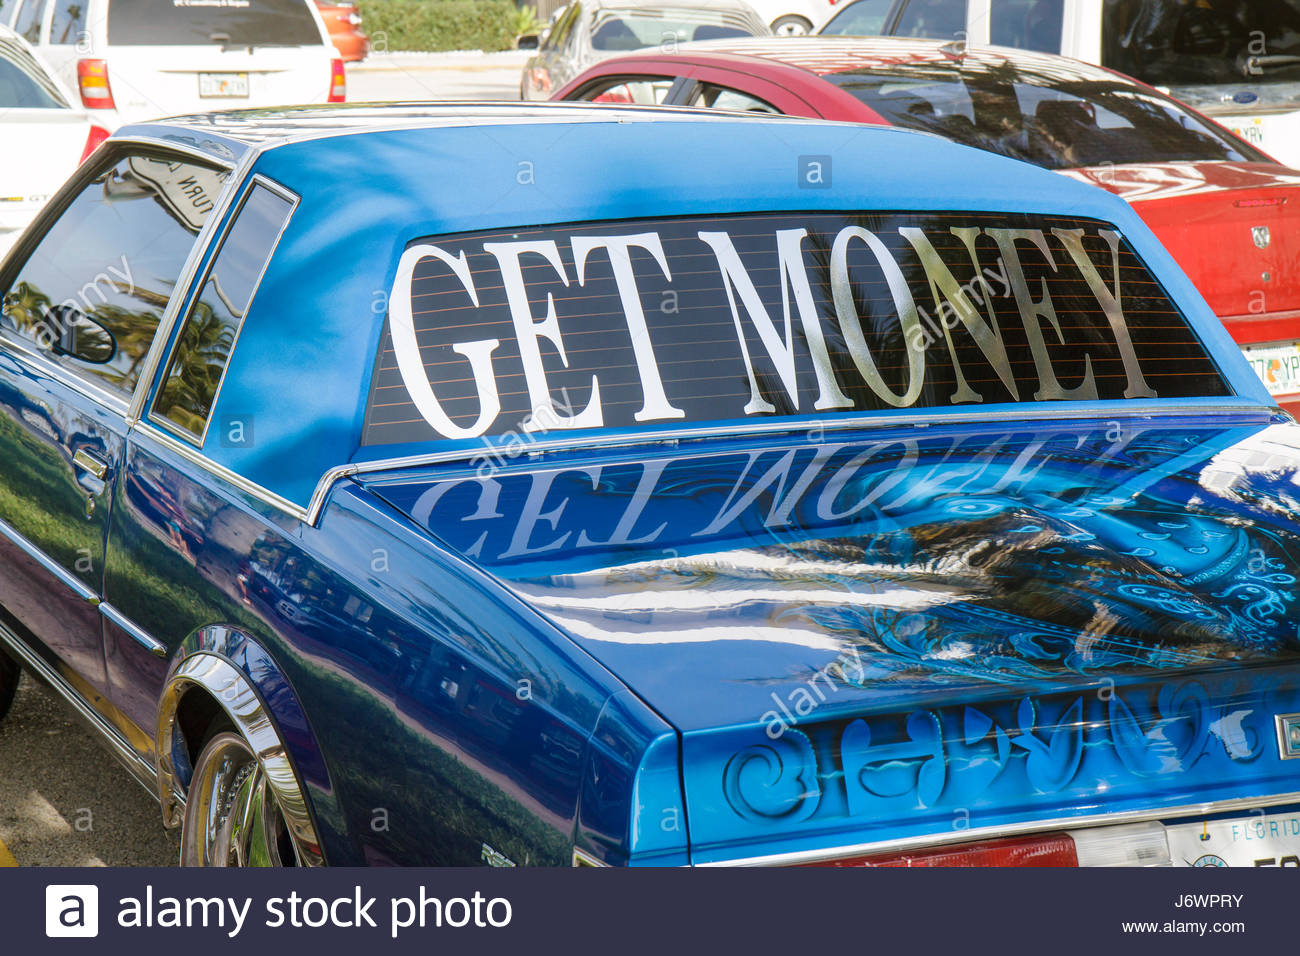 Pimped Car Stock Photos Pimped Car Stock Images Alamy - Pimped out cars